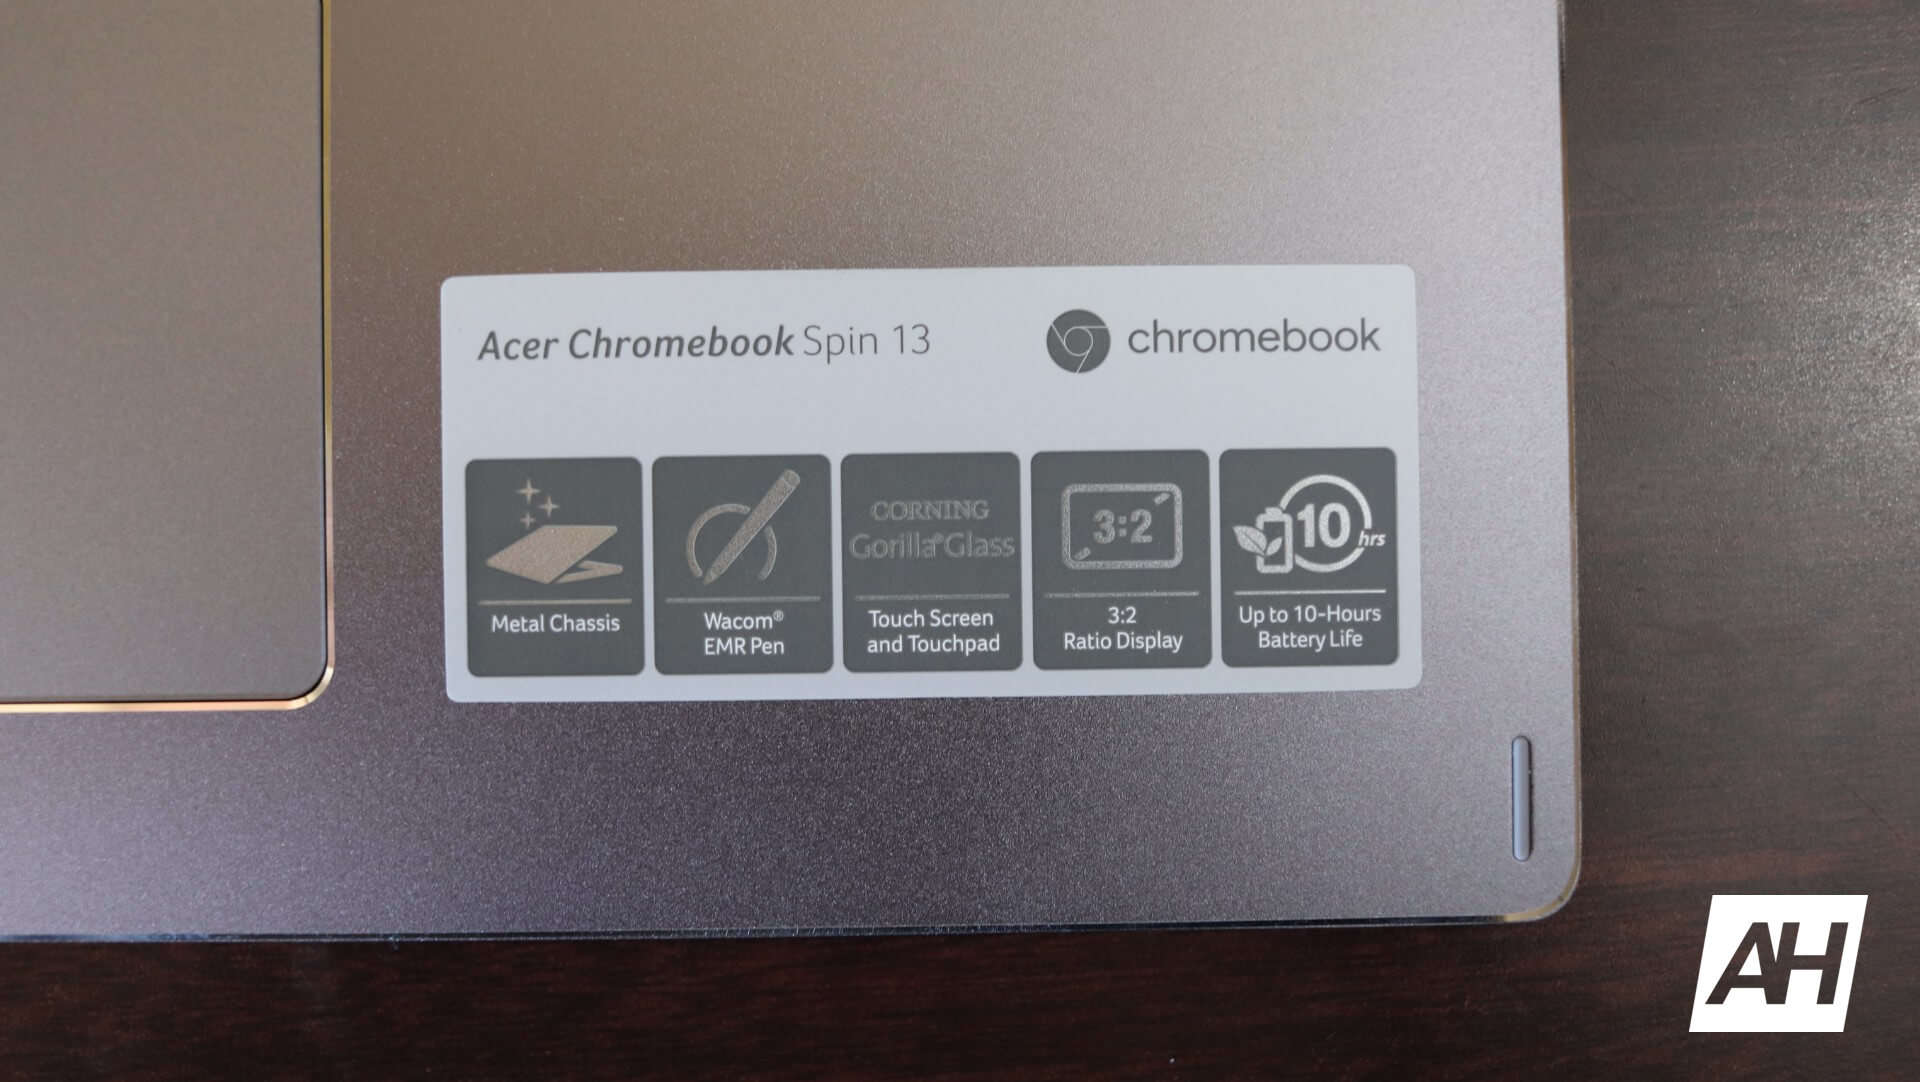 Acer Chromebook Spin 13 Review Hardware 31 AH New